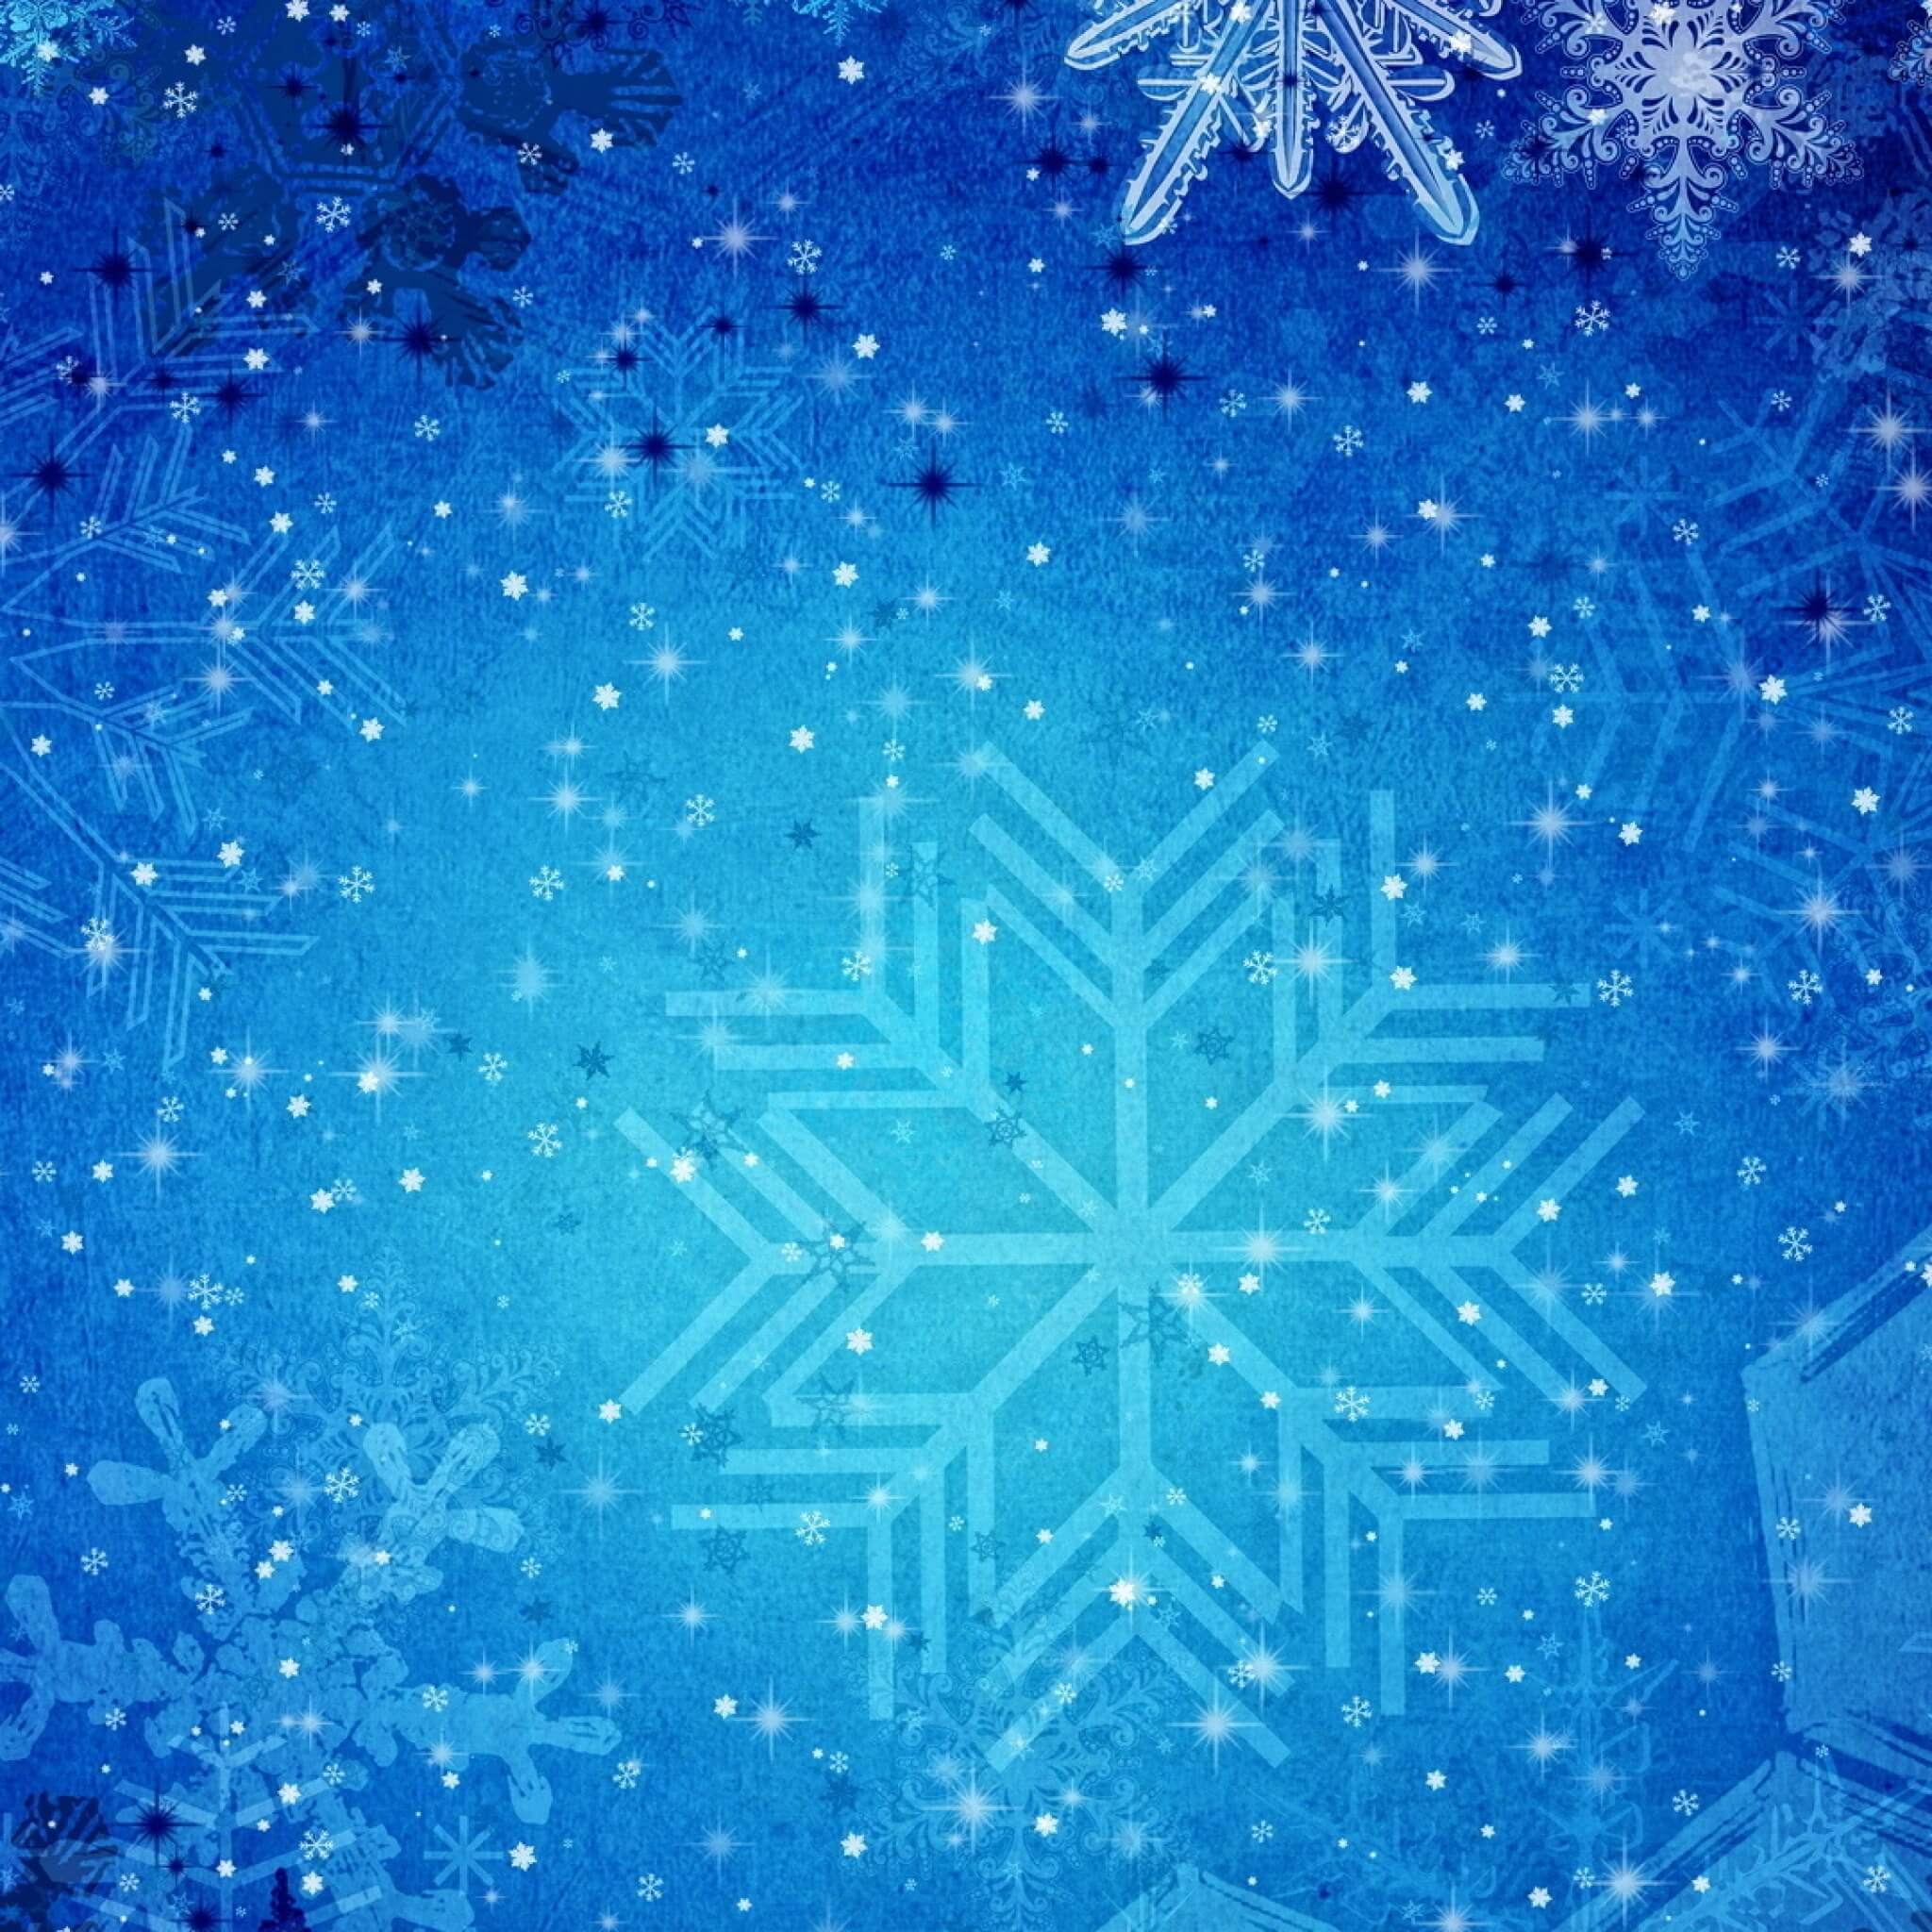 snowflakes_blue_patterns_86953_2048x2048